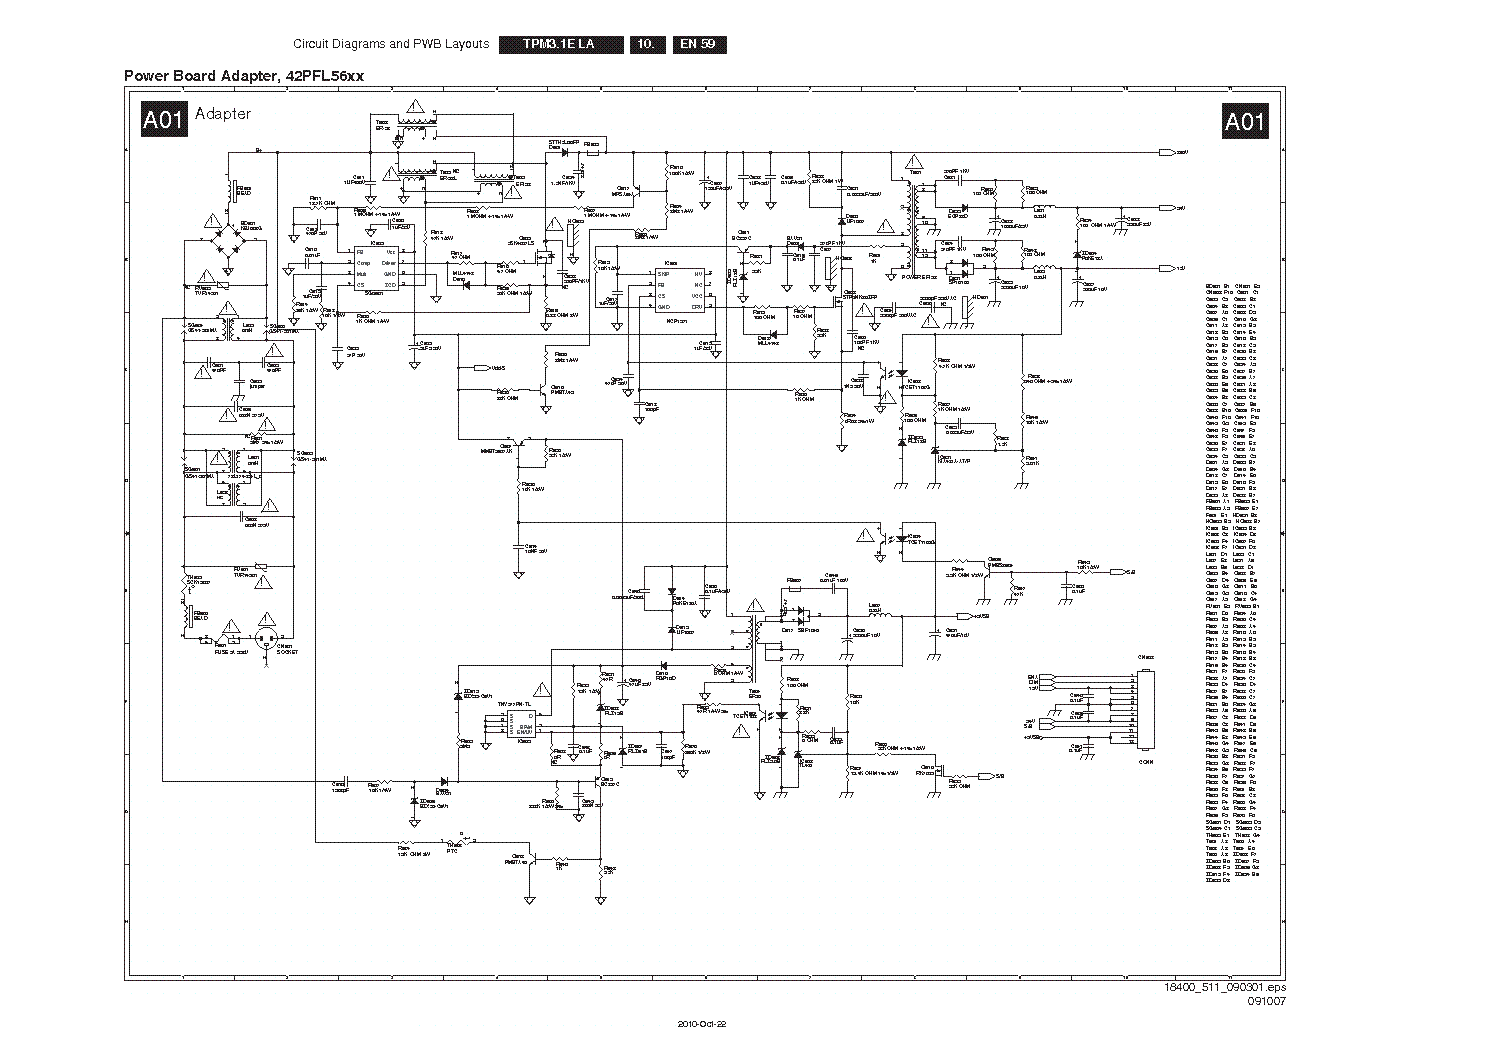 DOC] ➤ Diagram Philips Plcd150p1 Lcd Tv Power Supply ... Philips Lcd Tv Schematic Diagrams on